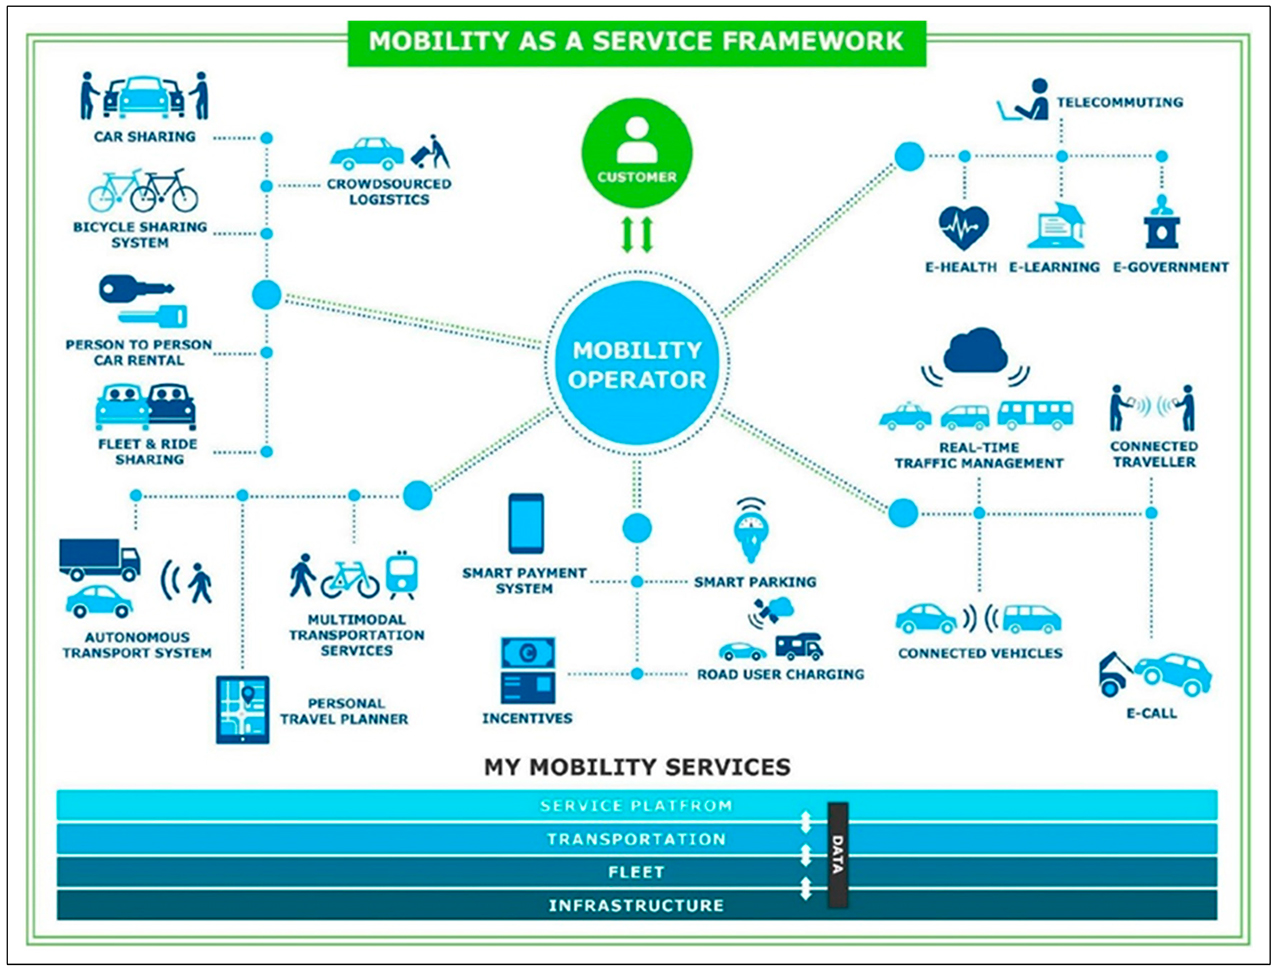 State of the Art of Mobility as a Service (MaaS) Ecosystems and Architectures—An Overview of, and a Definition, Ecosystem and System Architecture for Electric Mobility as a Service (eMaaS) (Image from Kivimäki et al.)